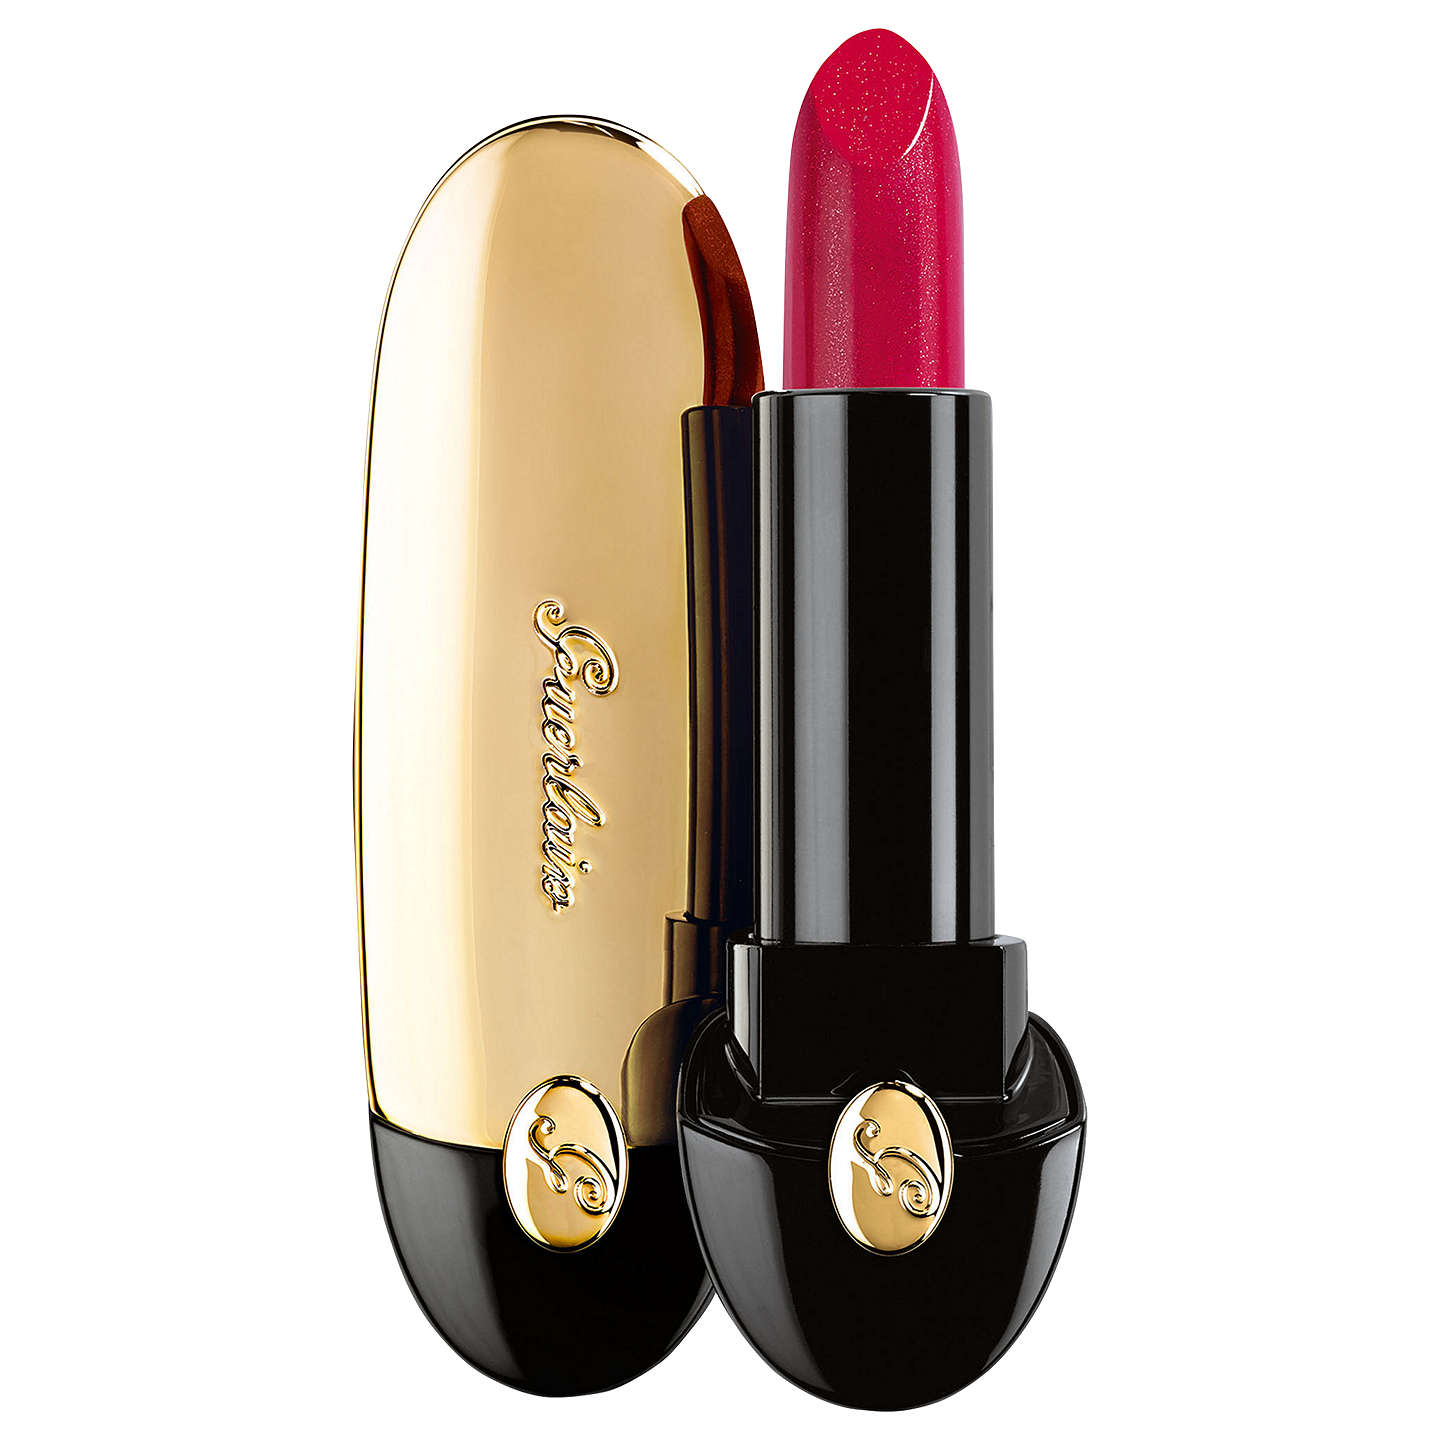 BuyGuerlain Limited Edition Rouge G Lipstick, 822 Glamorous Cherry Online at johnlewis.com